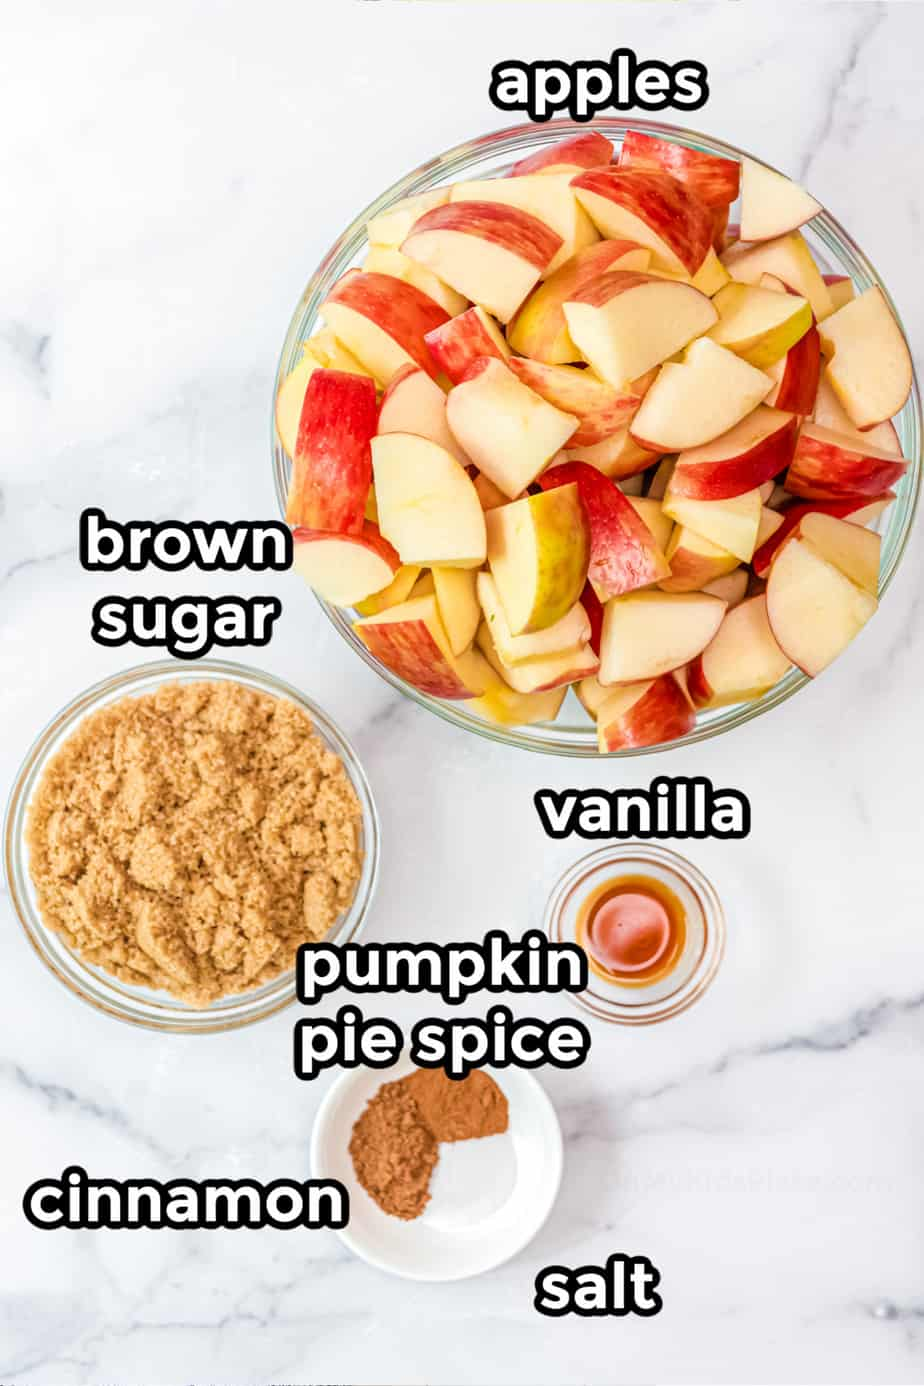 ingredients for apple butter